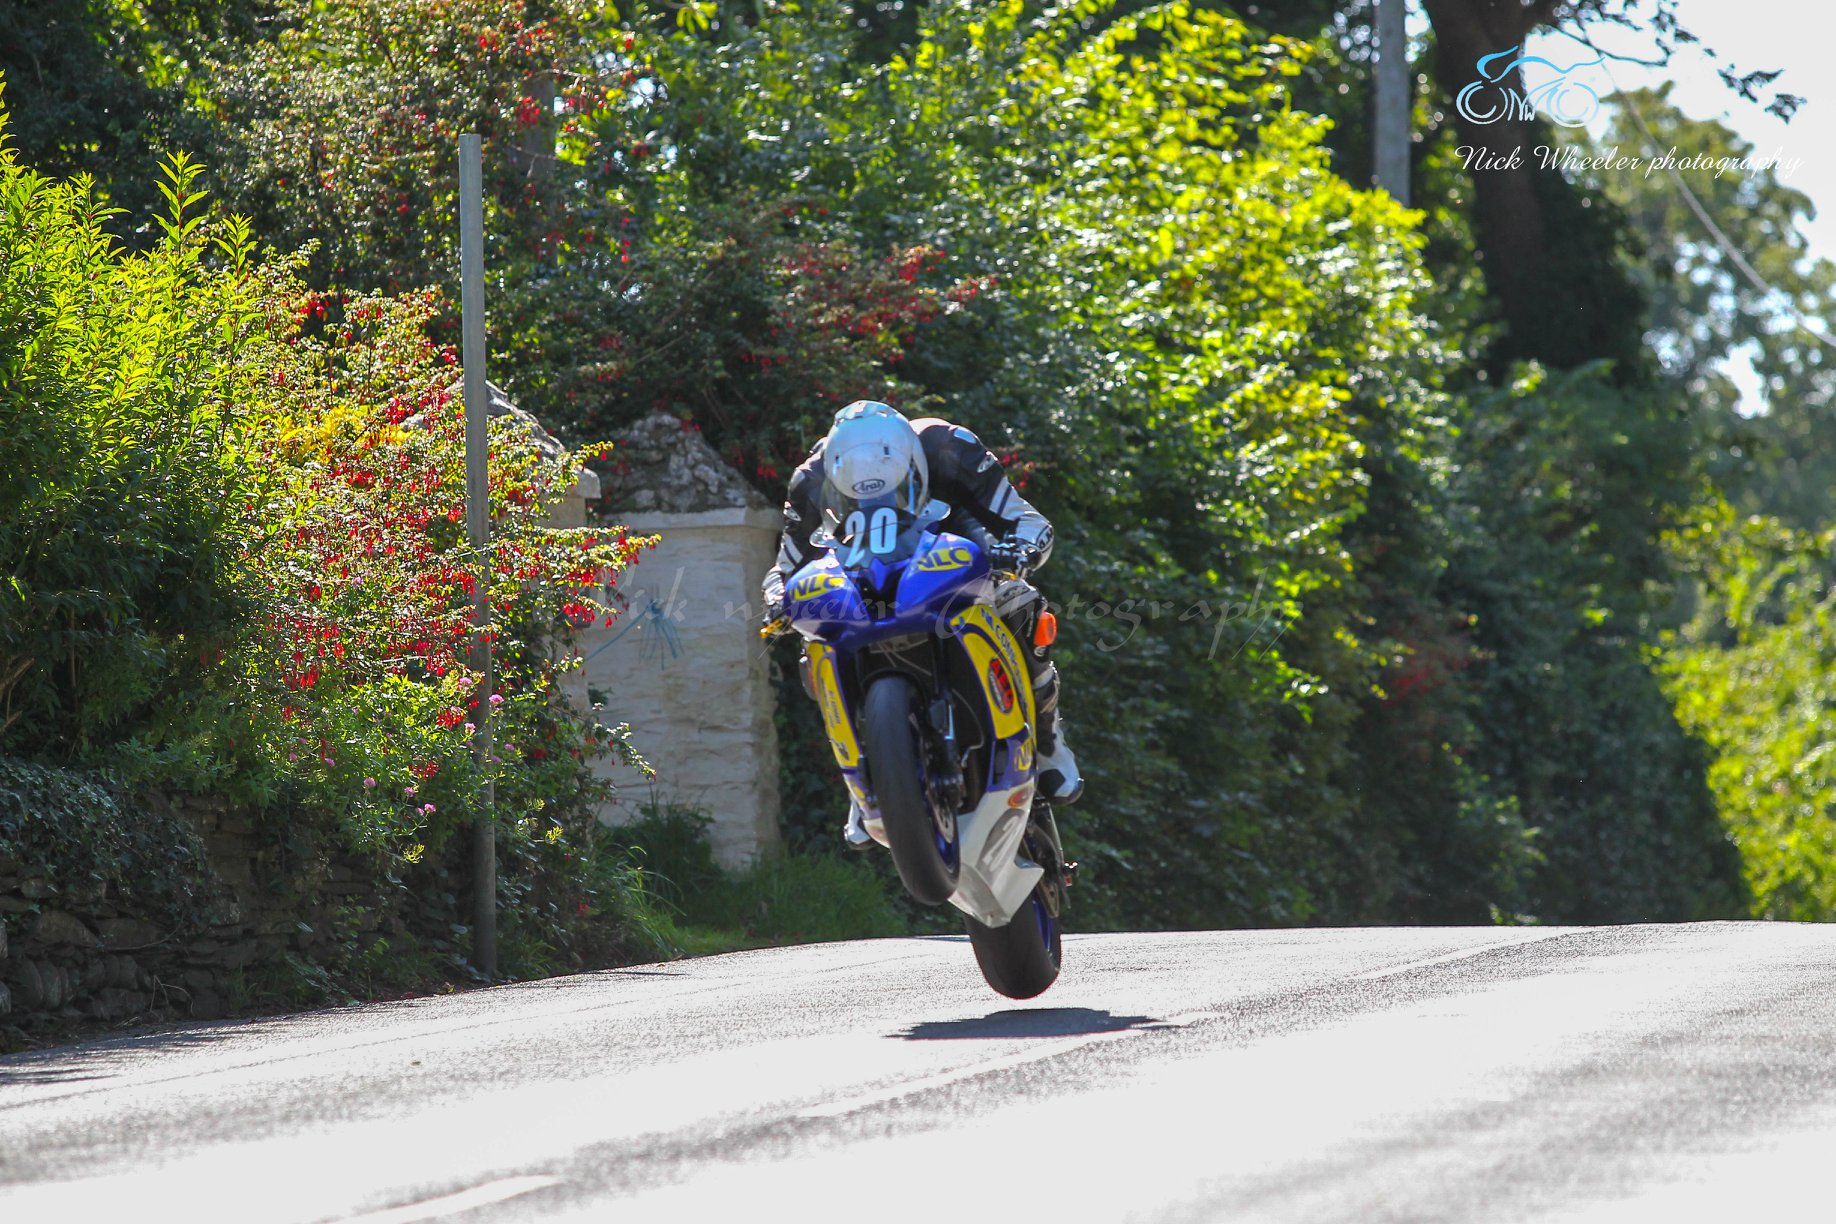 Hind Stars, Butler, Ingham Show Great Form, Newcomers Impress In Friday's Afternoon's MGP Practice Session